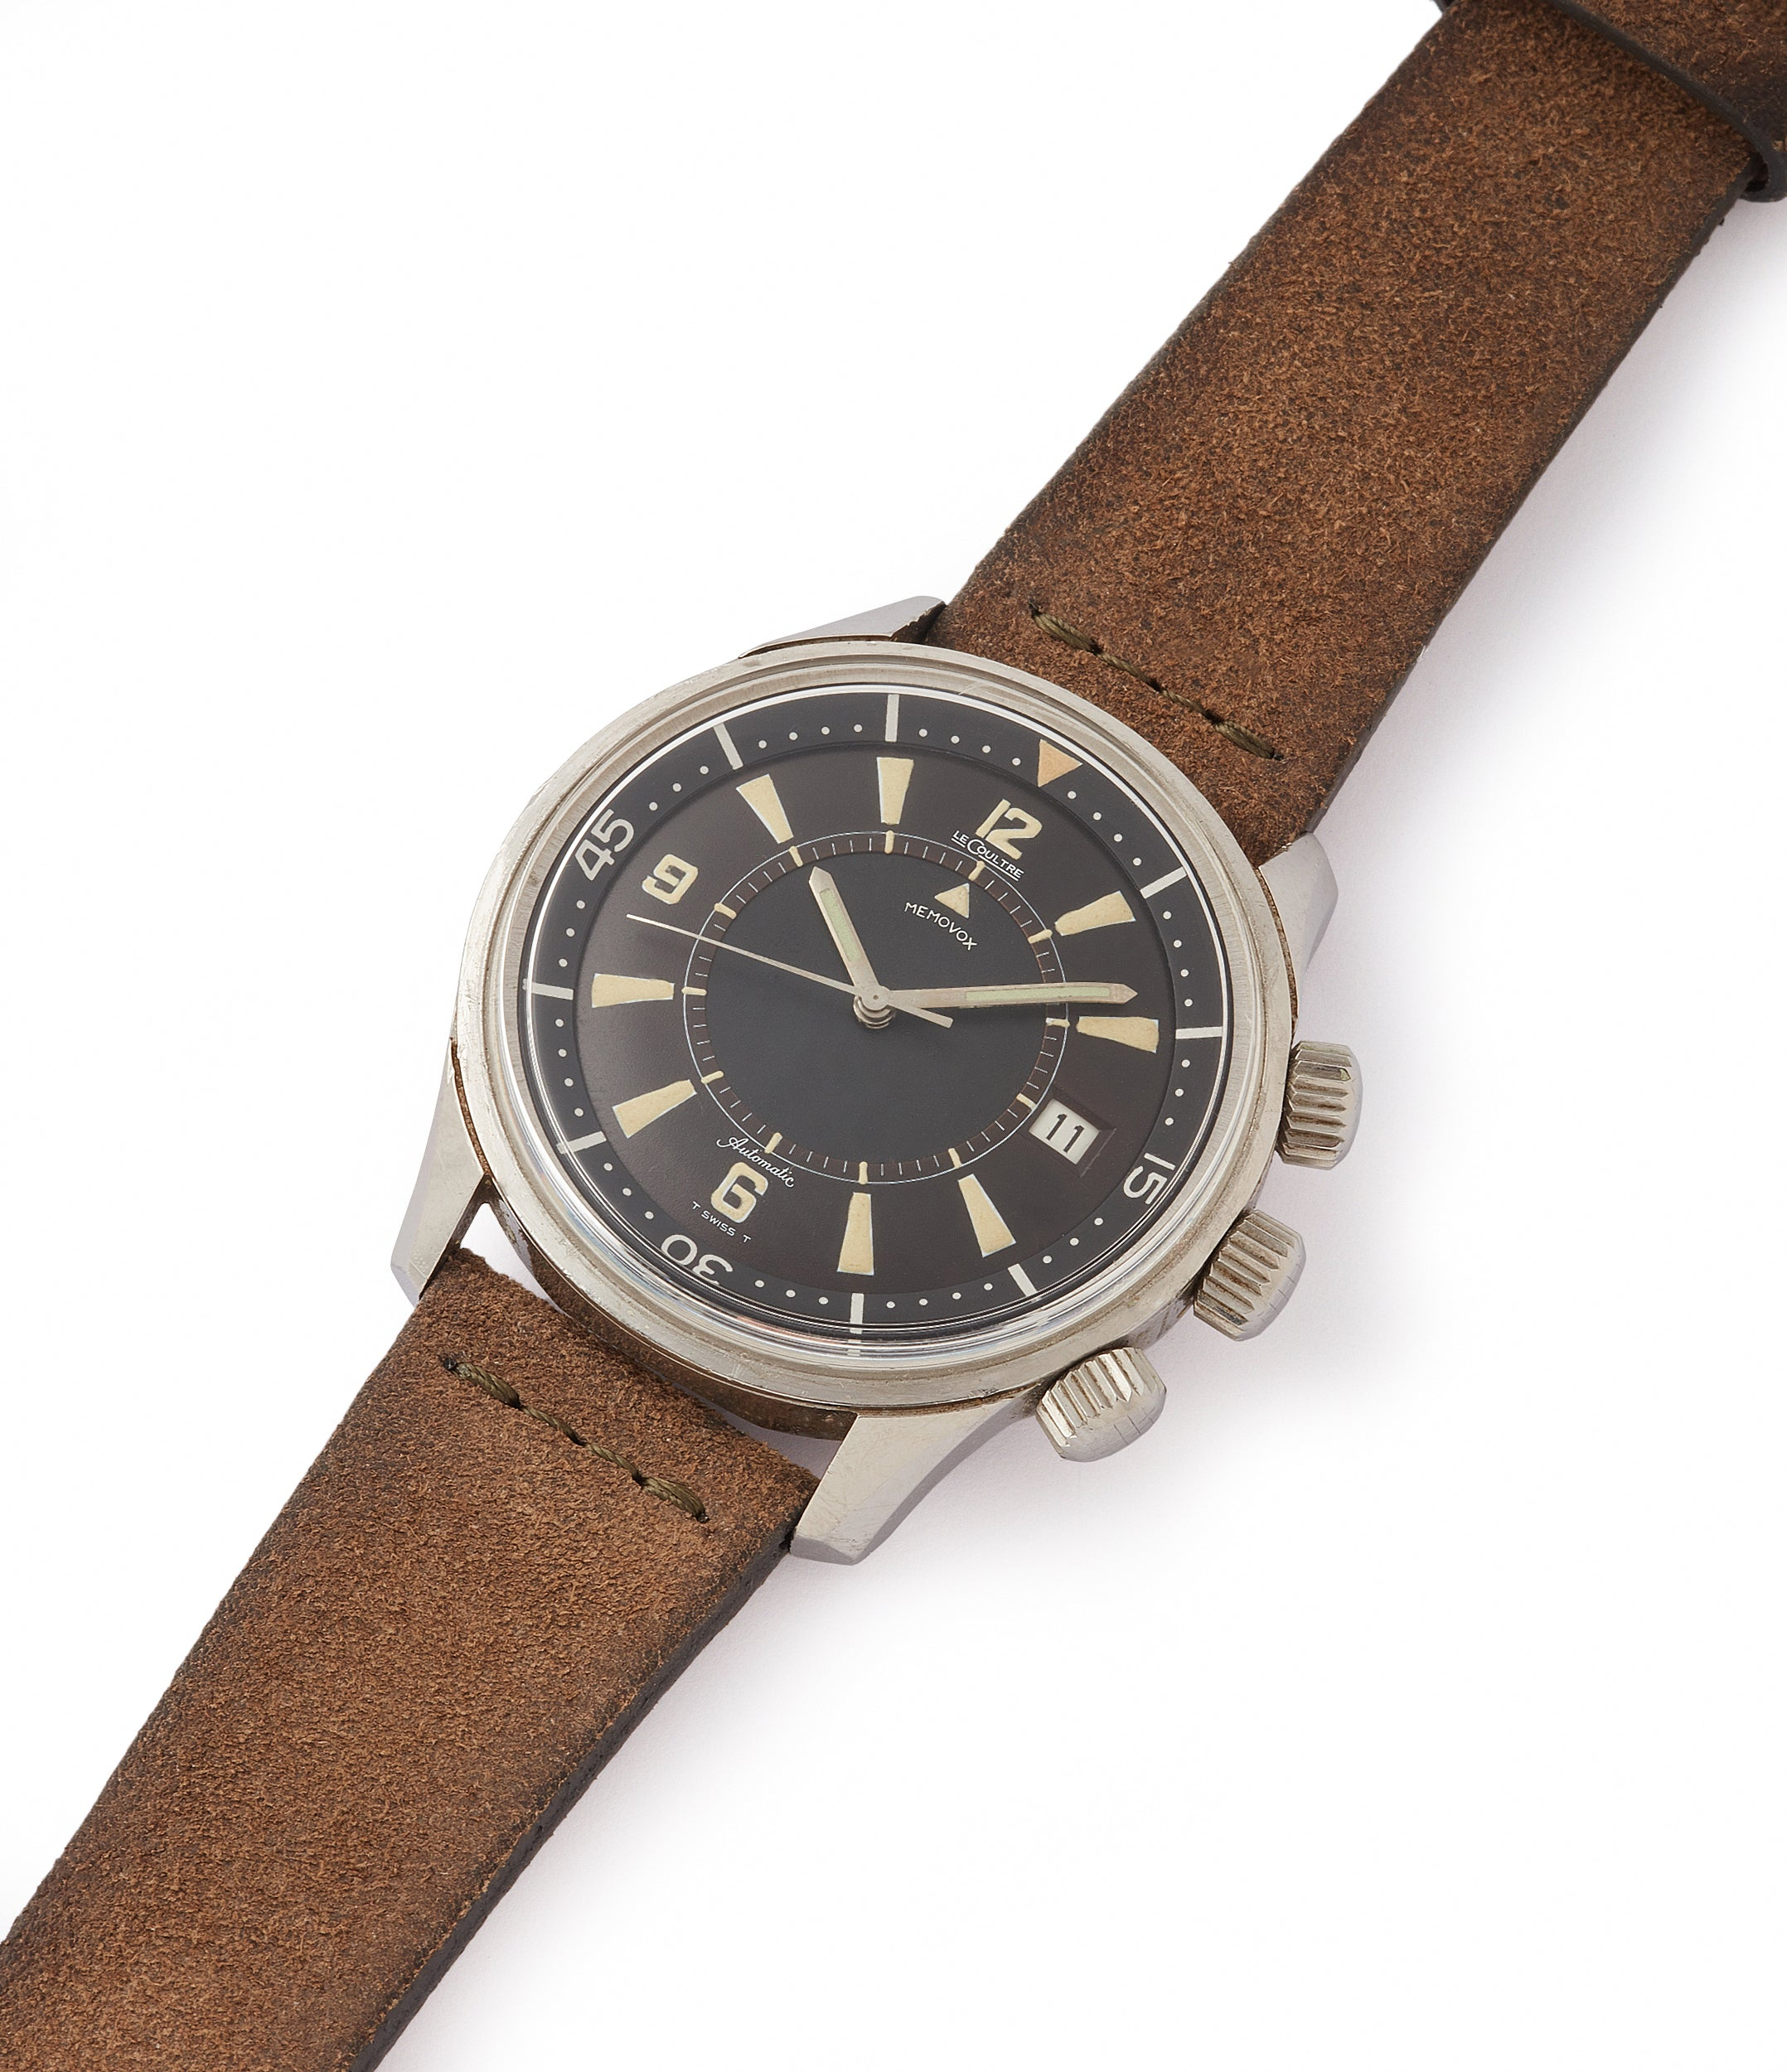 shop vintage Jaeger-LeCoultre Memovox Polaris E859 Cal. K825 alarm diving watch for sale at A Collected Man London UK specialist of rare watches